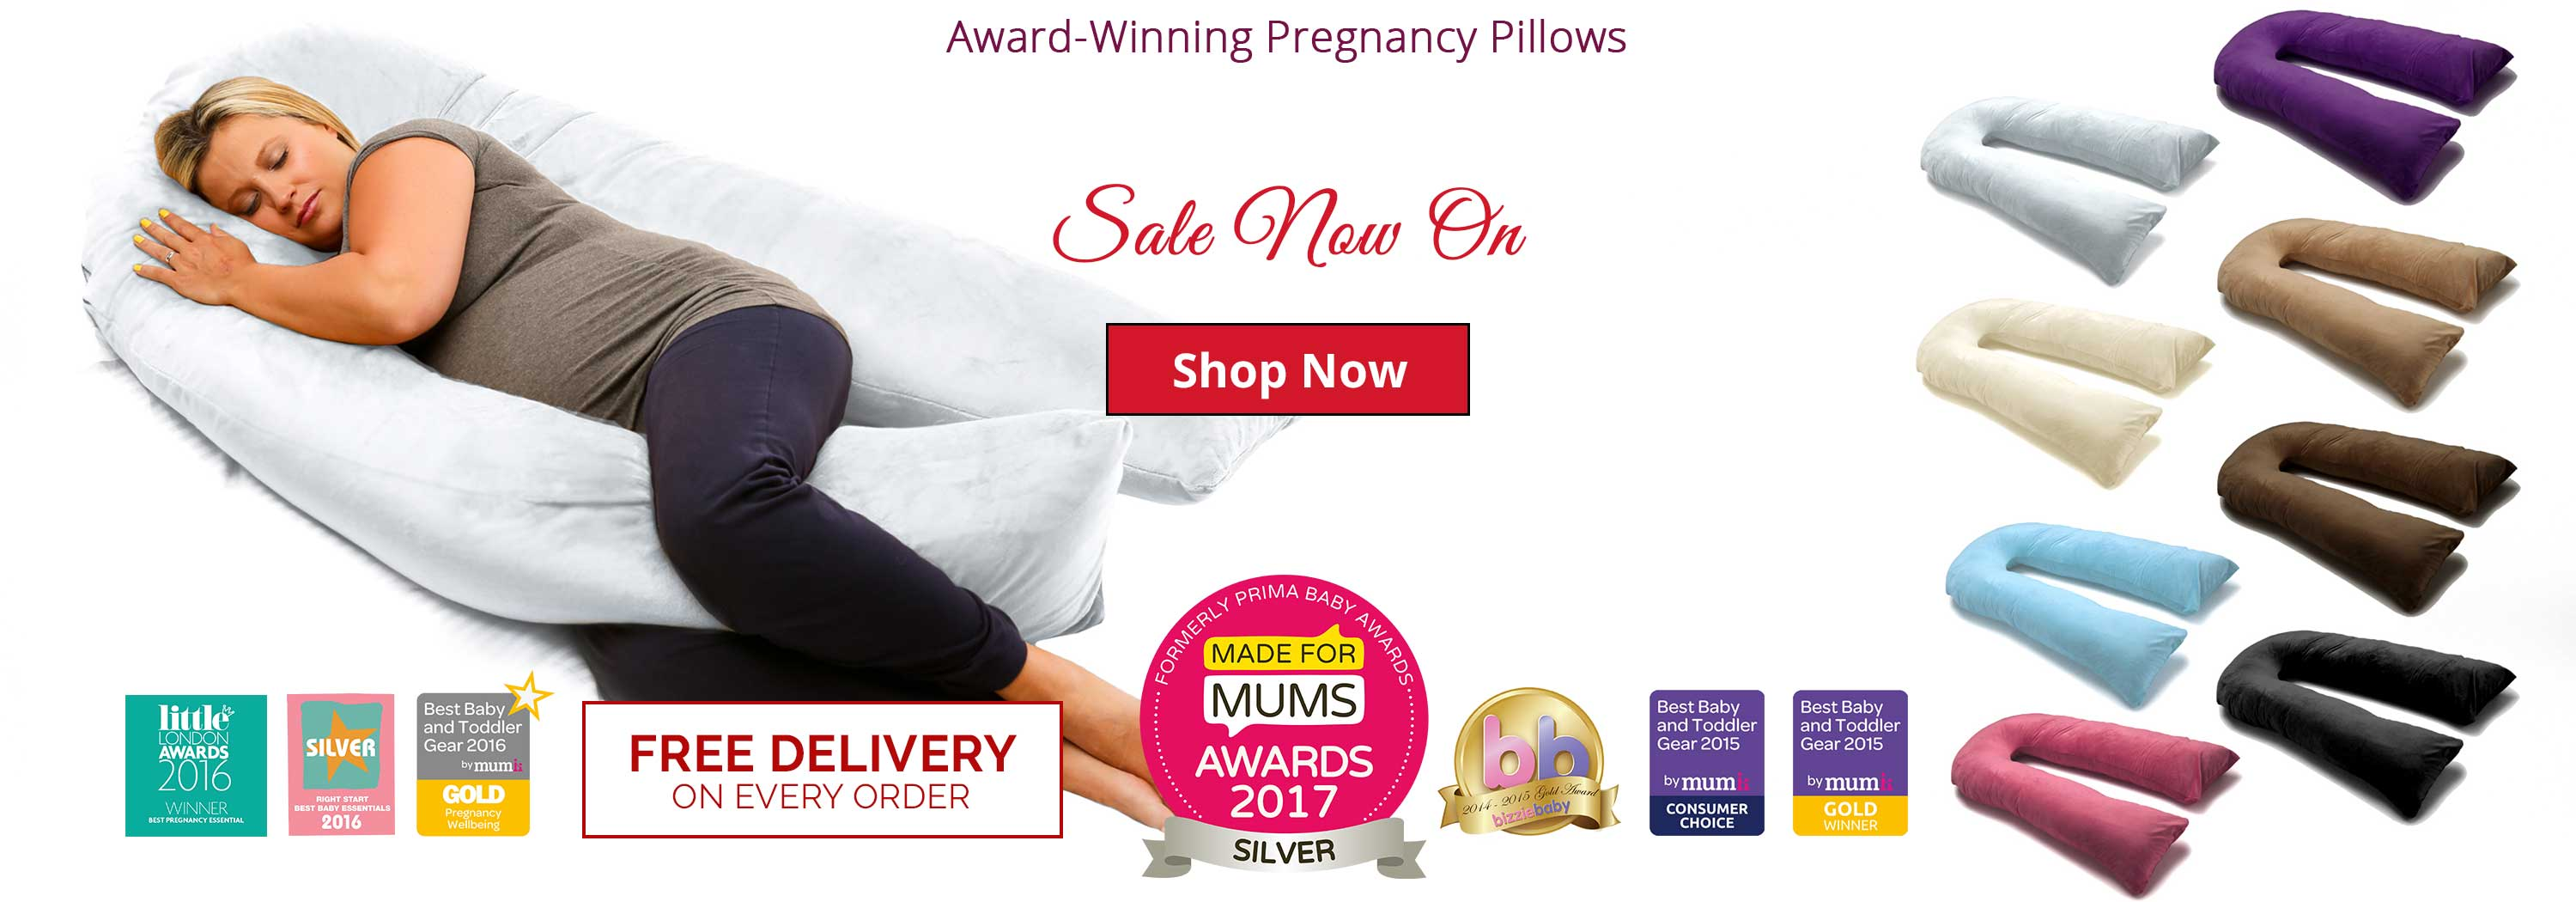 Our pregnancy and nursing pillows win again at the Mumii Awards 2016